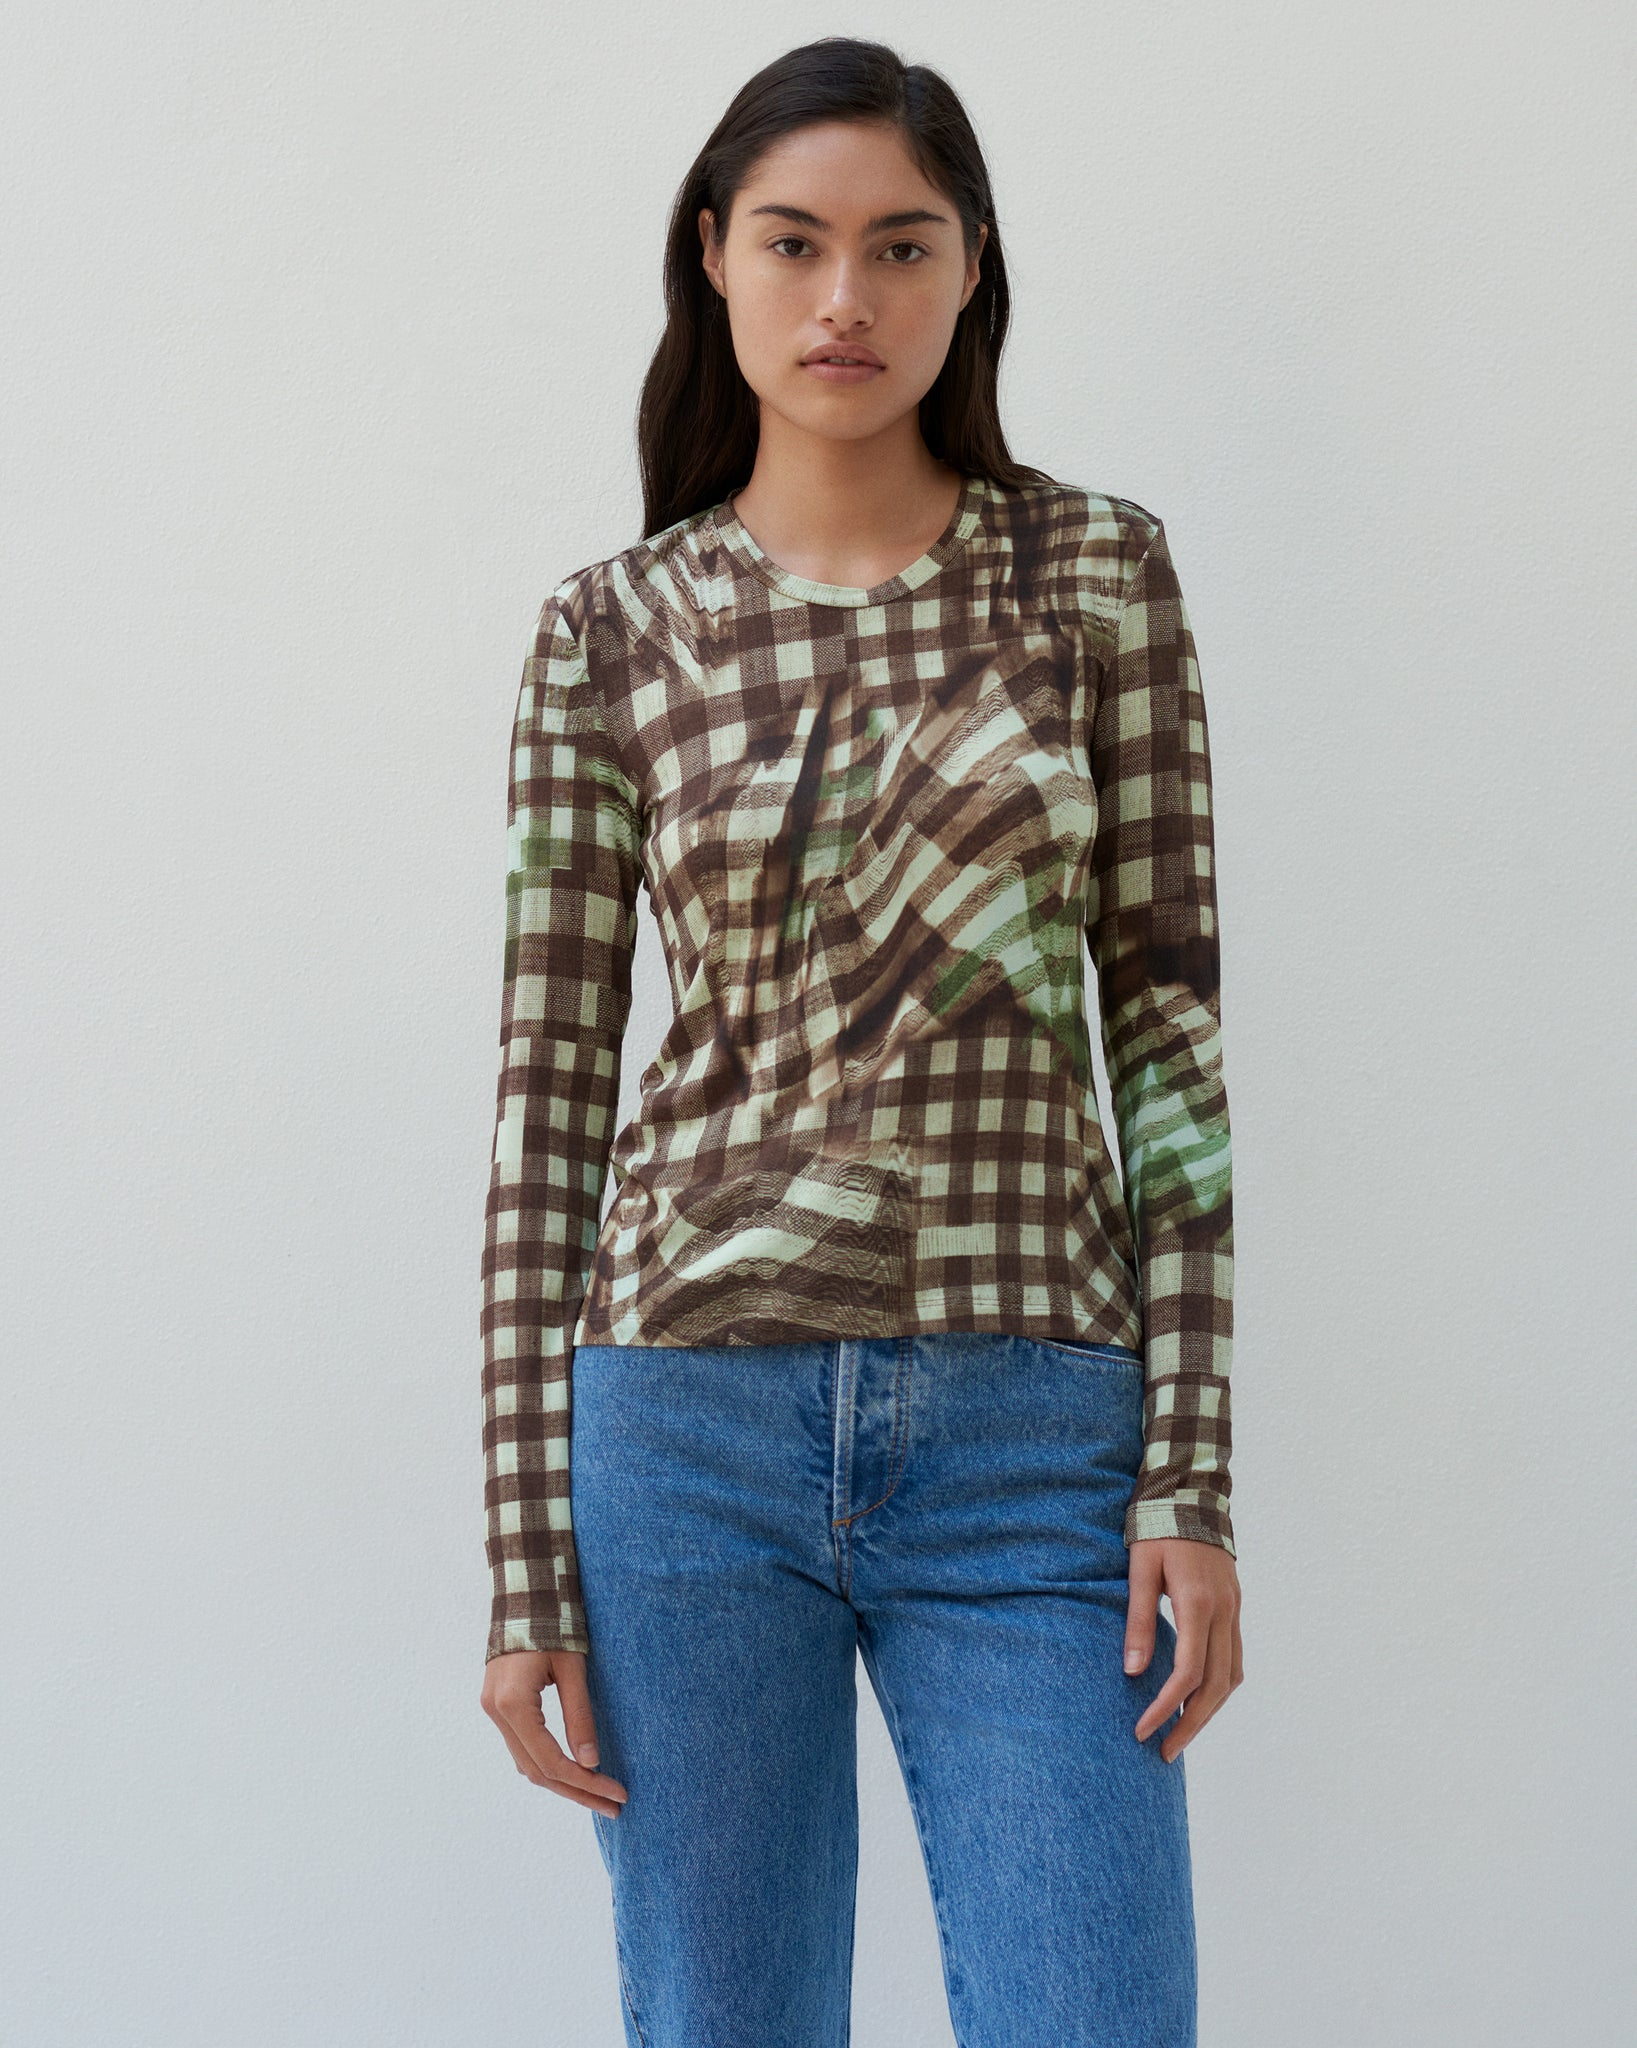 LONG SLEEVED TOP IN PRINTED VISCOSE JERSEY